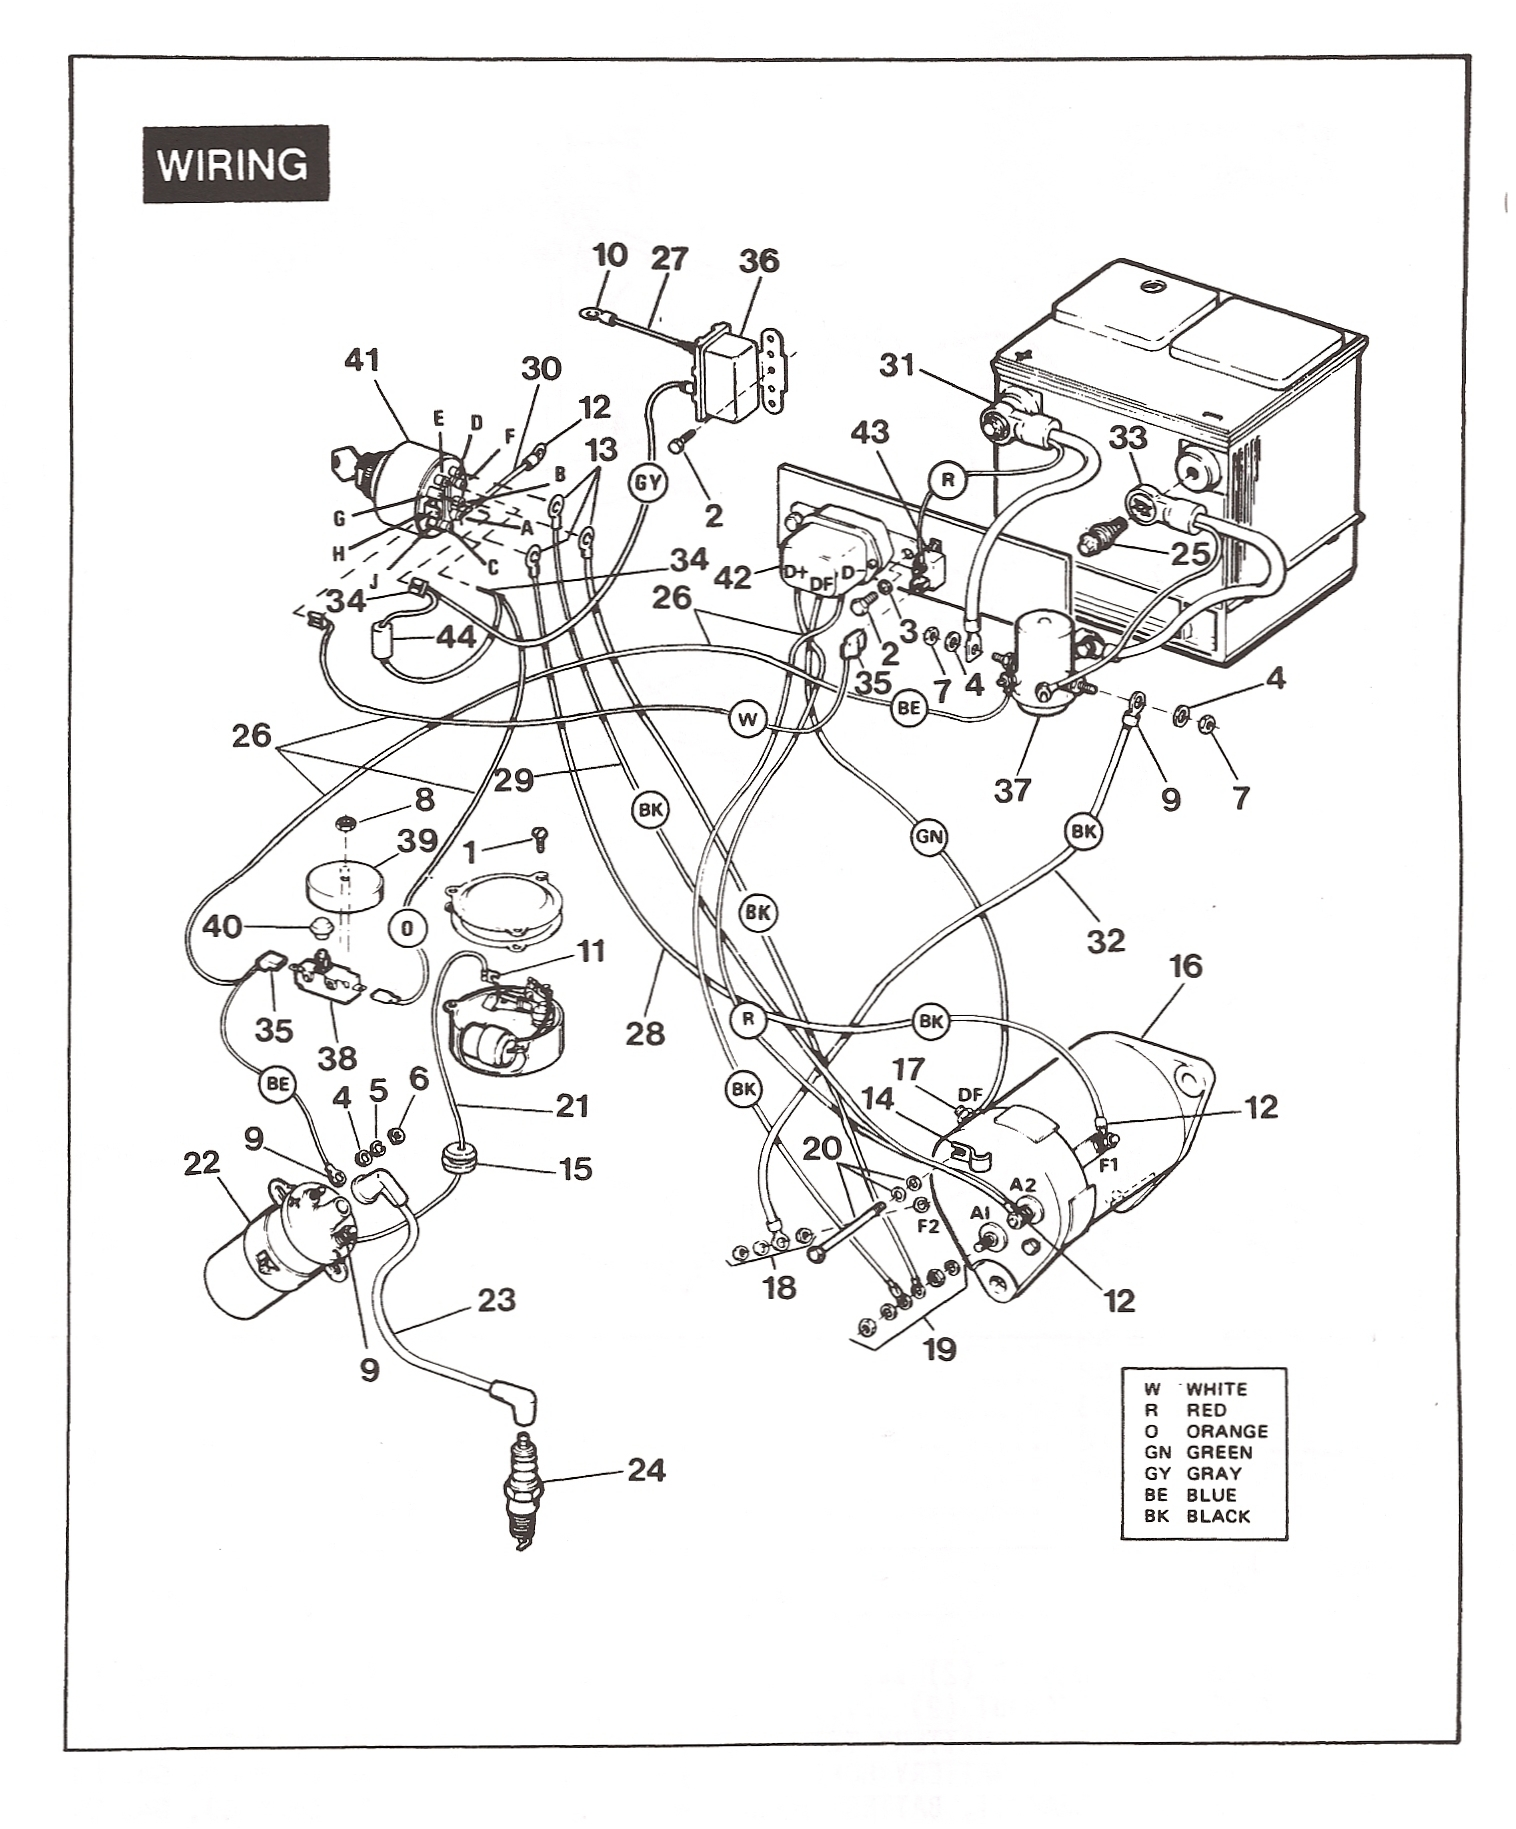 Harley Davidson Shifter Linkage Diagram likewise Shovelhead Chopper Ignition Wiring Diagram as well Dream A Little Dream Ironhead Nightmare moreover 775917 Need Exploded Parts Diagram 1994 Evo furthermore 282249101622349651. on harley davidson sportster 1000 wiring diagram